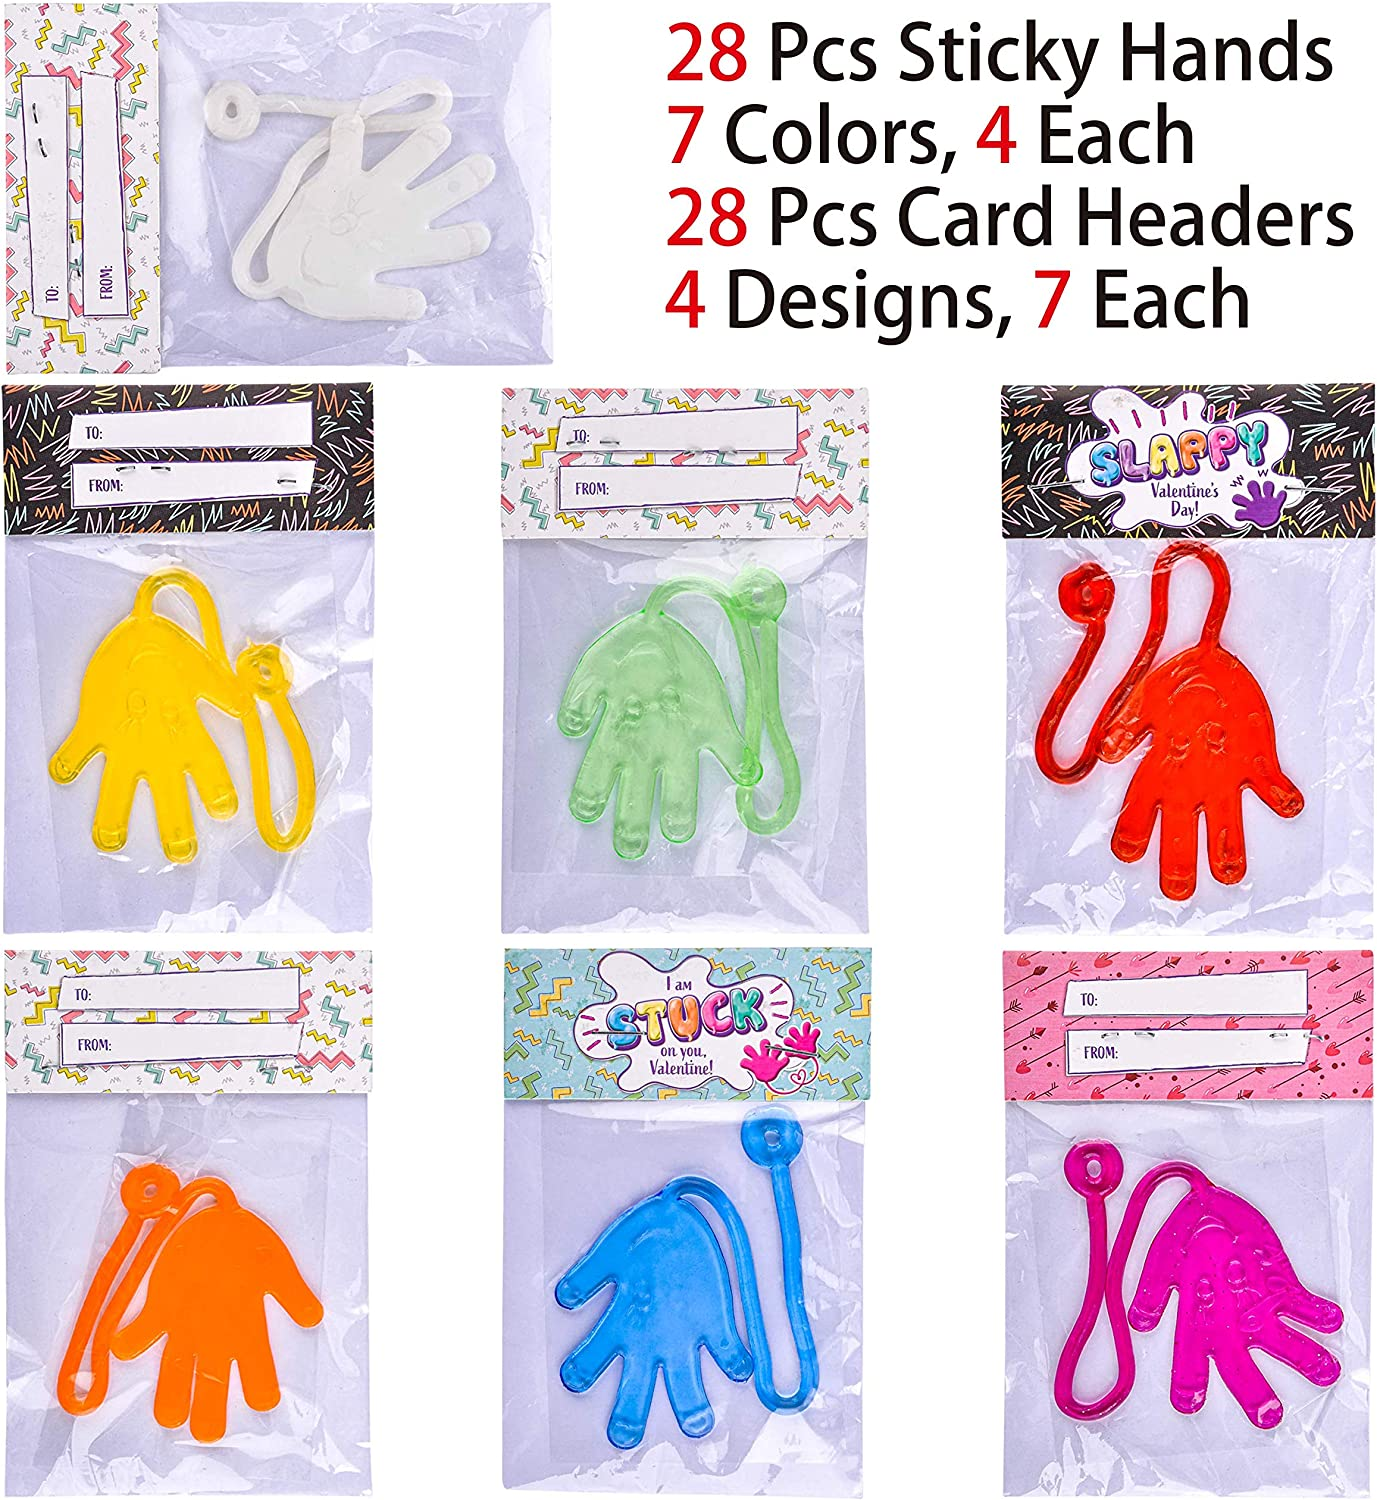 Valentine Party Favors Valentine Exchange Gifts JOYIN 28 Packs Sticky Hands with Card Headers for Kids Party Favor Valentine/'s Greeting Cards Classroom Exchange Prizes